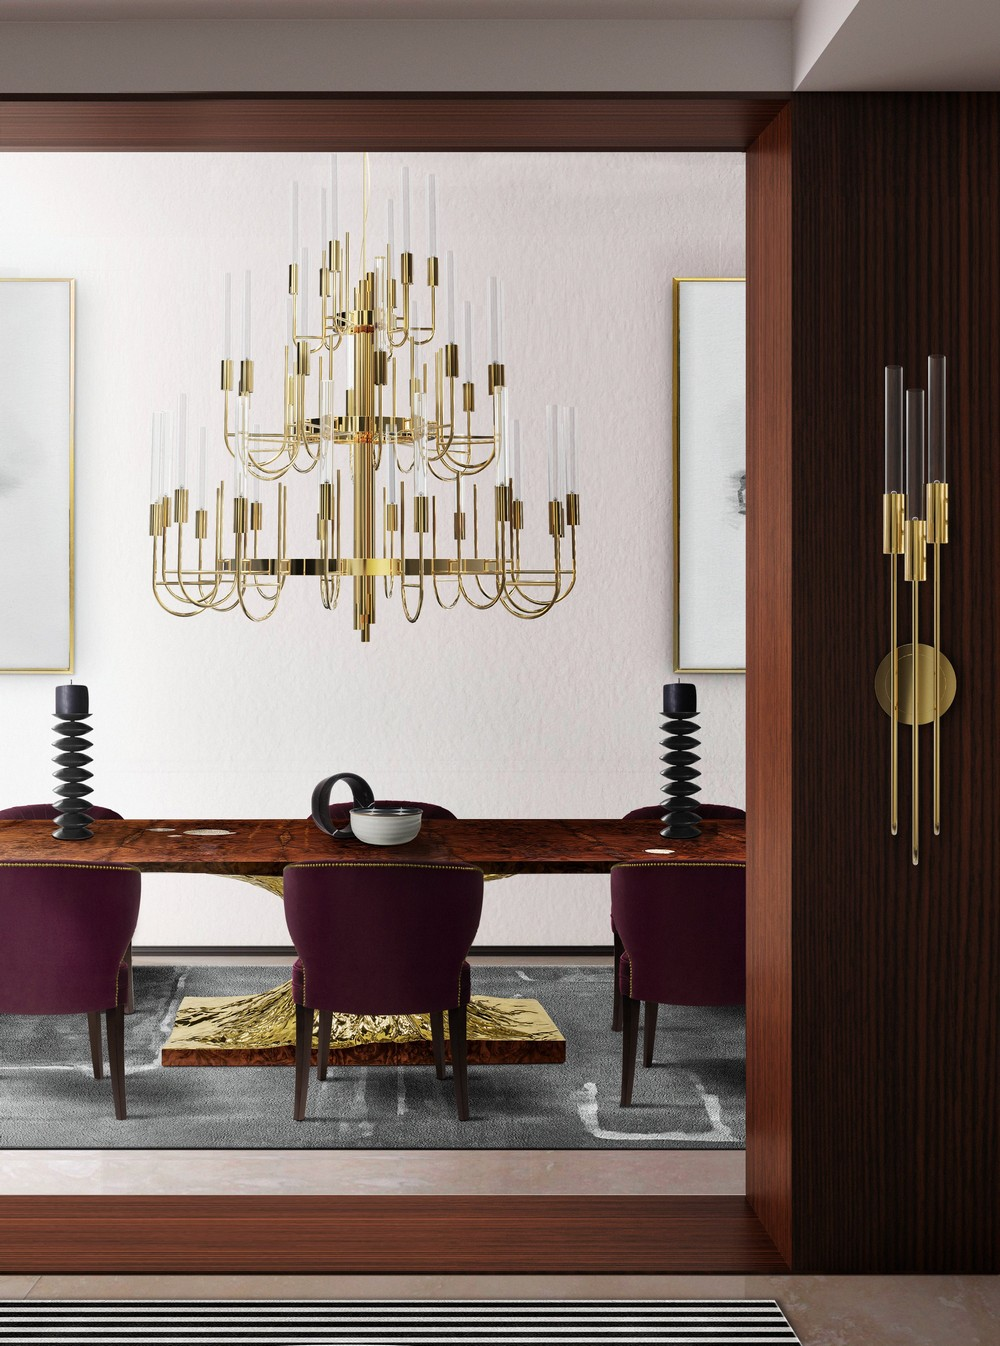 top interior designers Shop The Look: Dining Room Ideas By Top Interior Designers (Part III) marcel wanders2